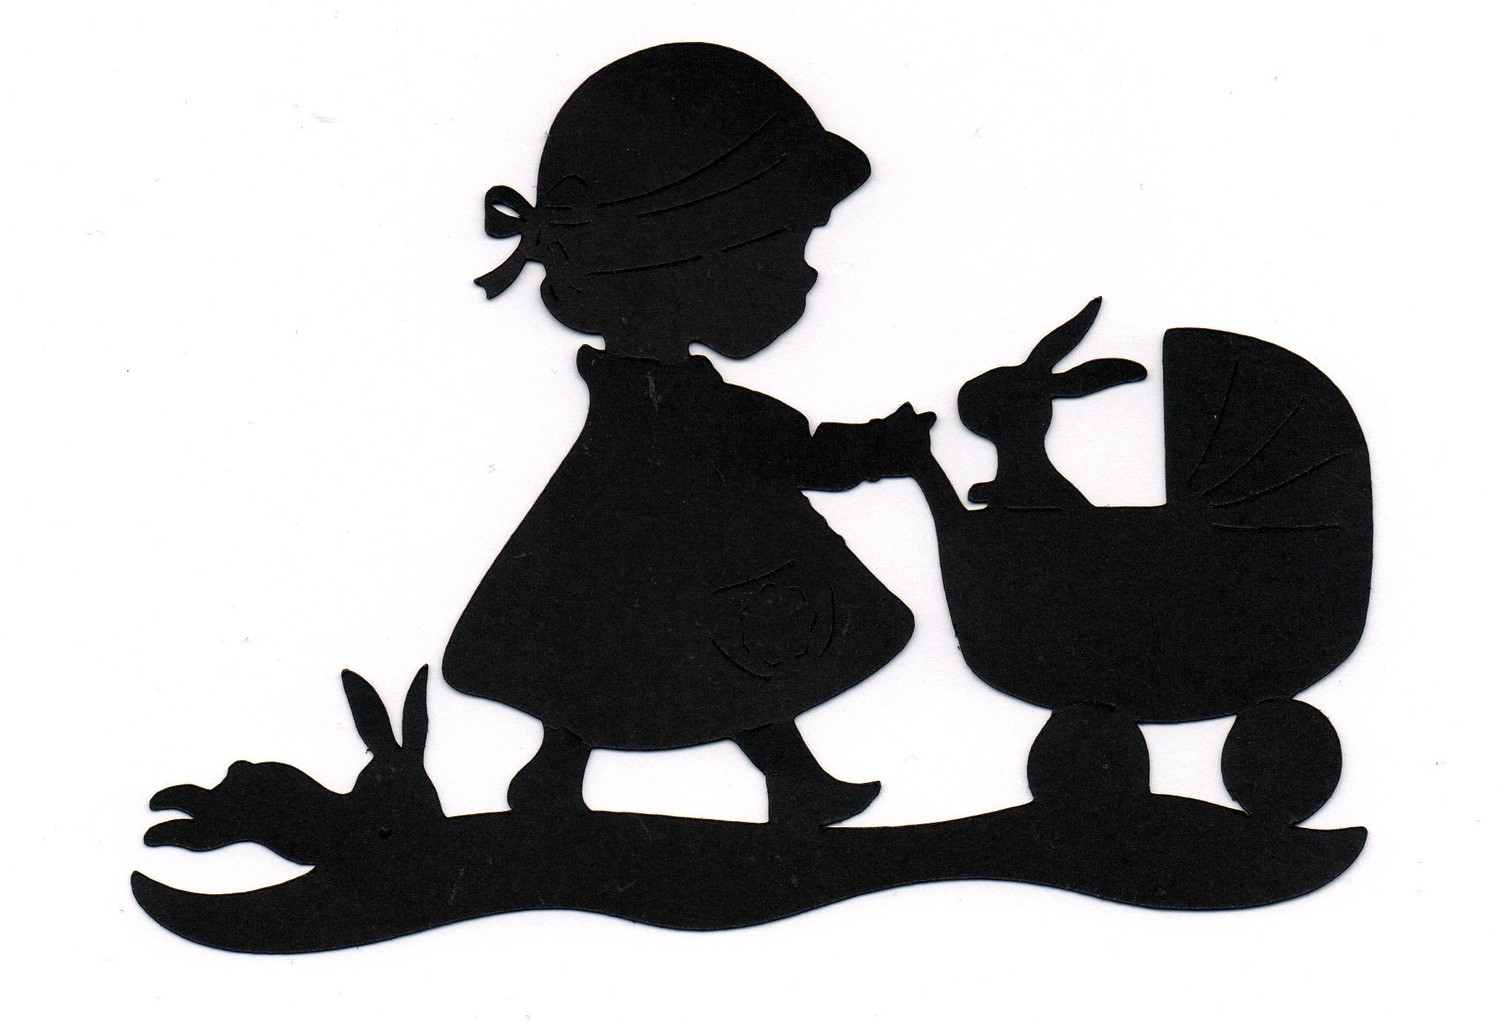 clipart image easter bunny silhouette - photo #24